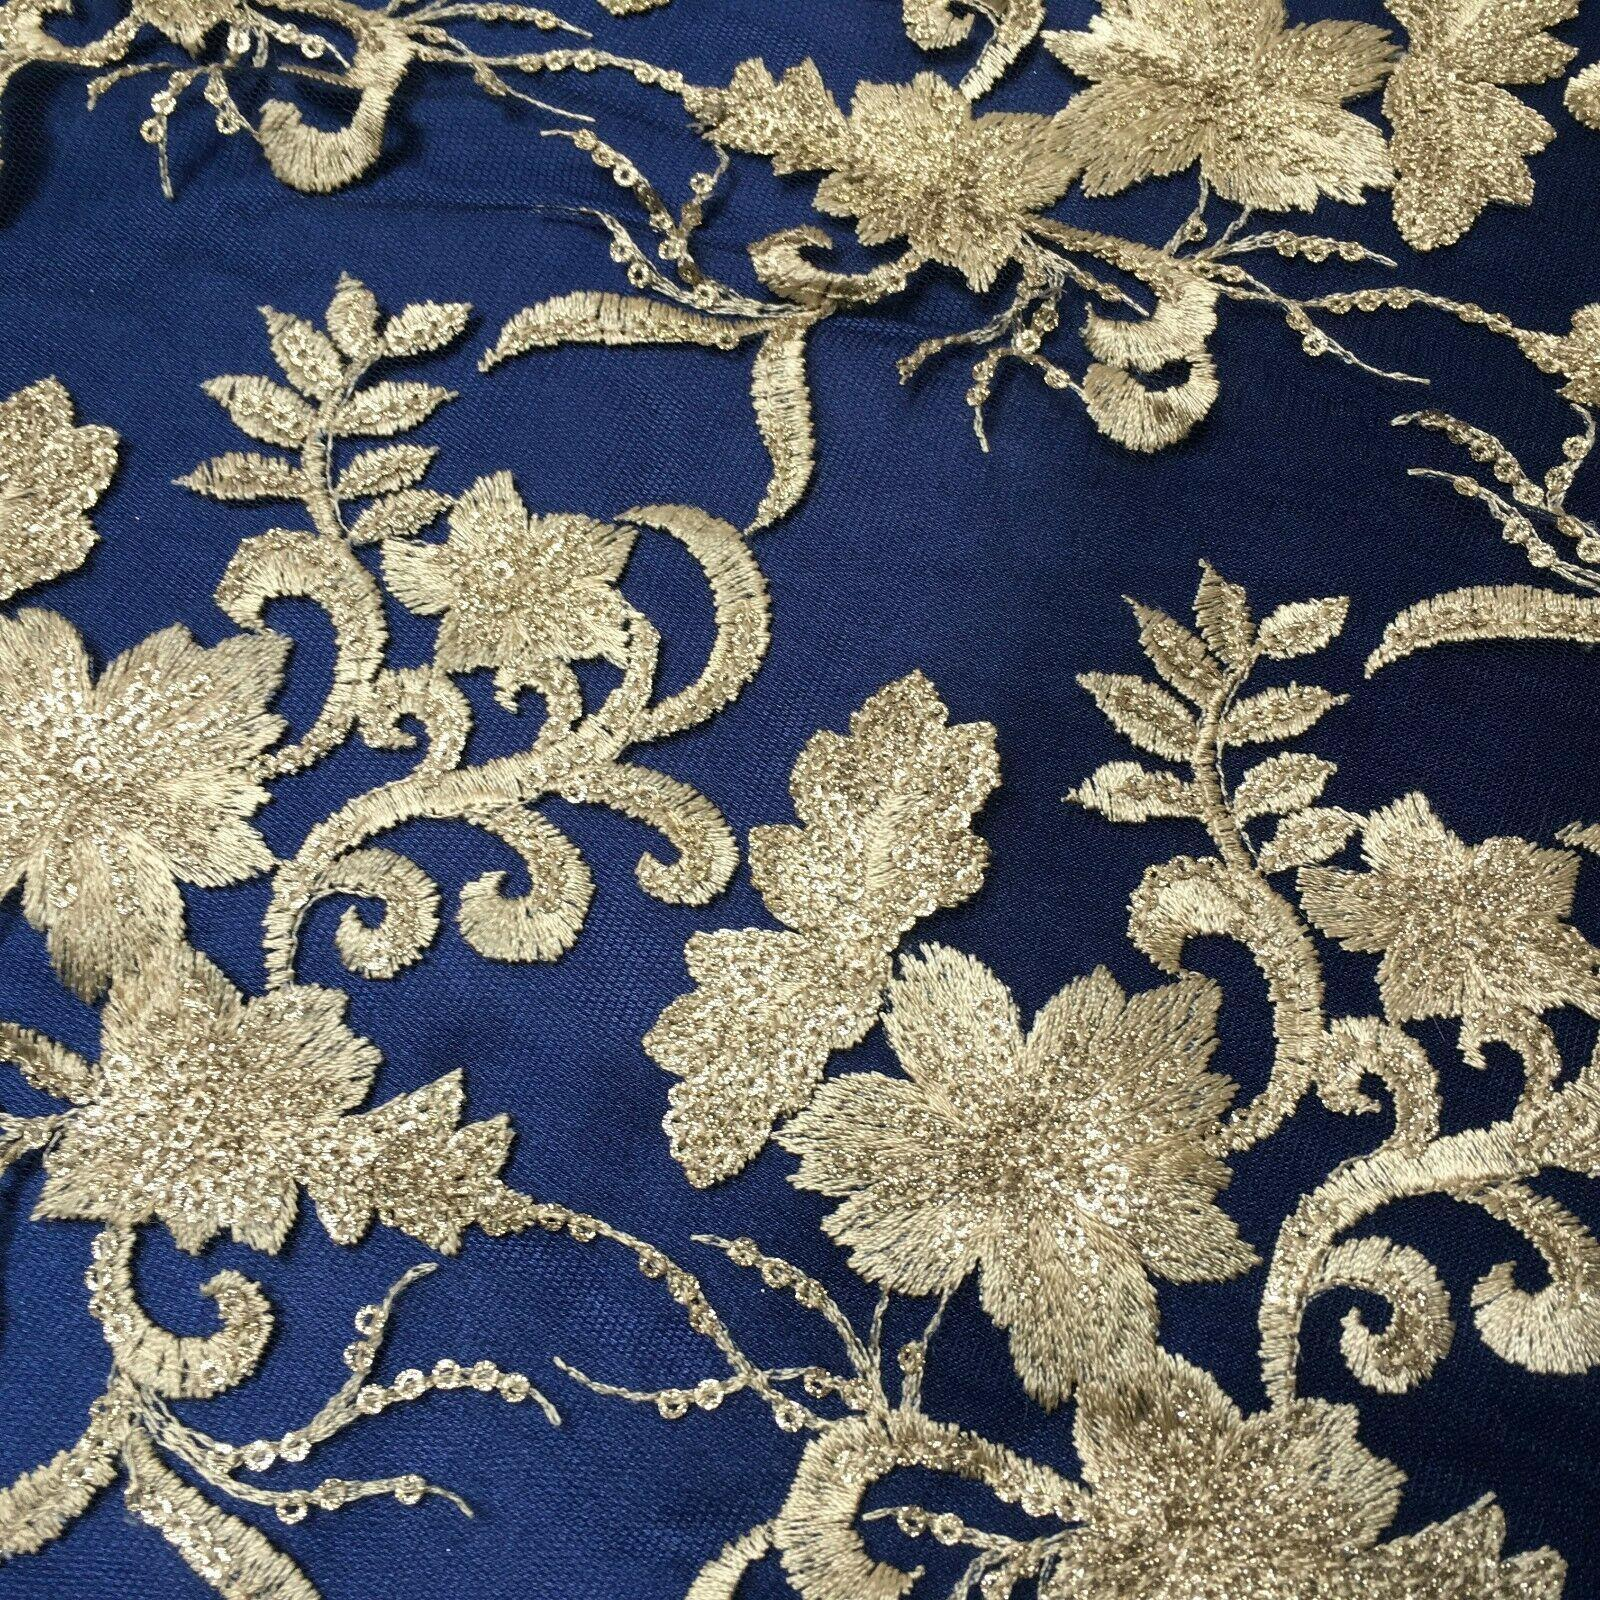 Floral Double Scalloped Gold Thread Embroidered Net Fabric 120cm Wide MJ1070